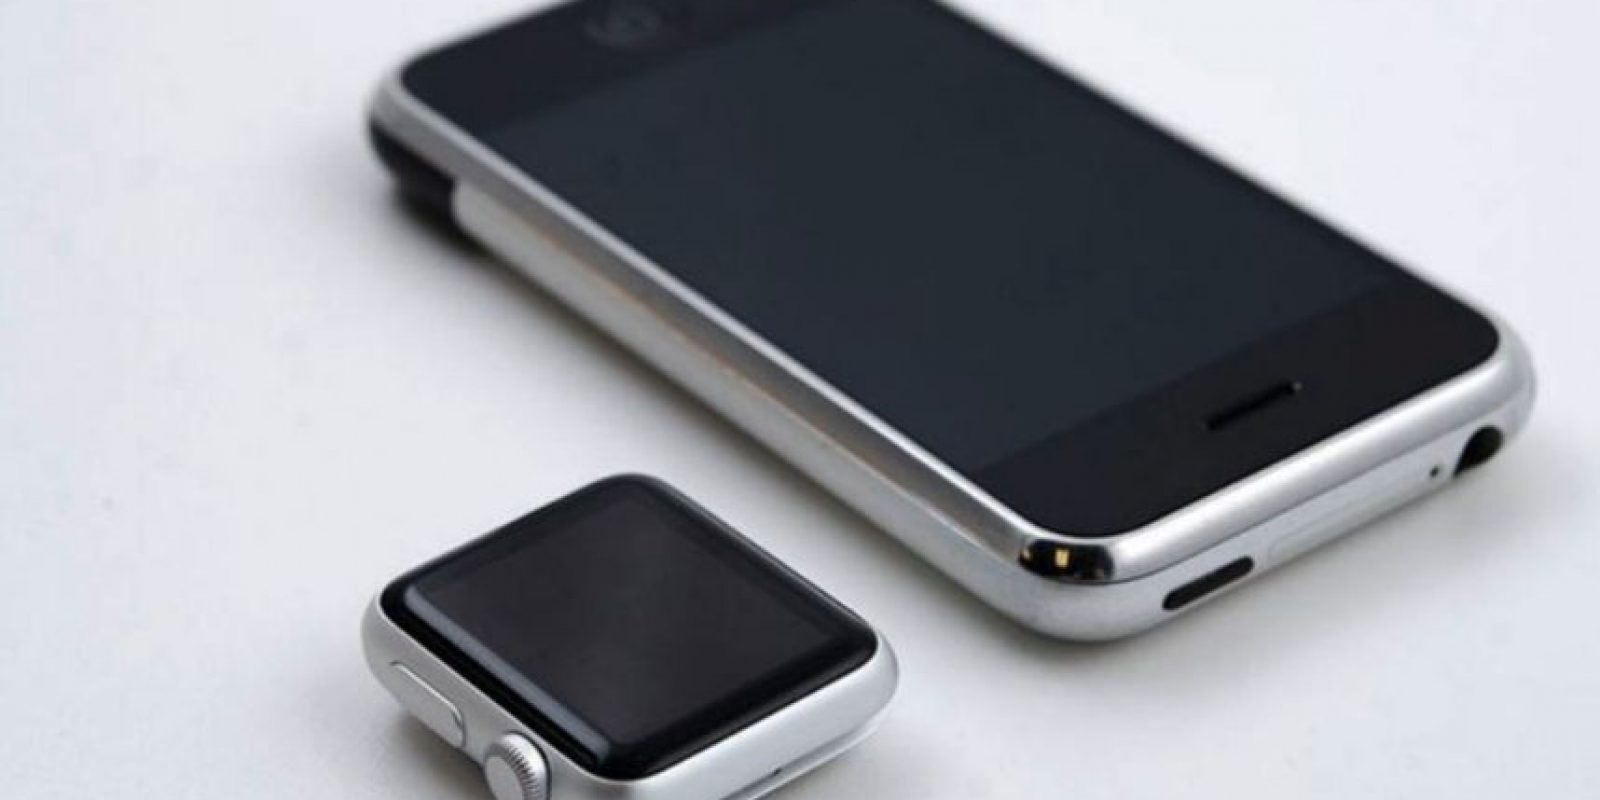 Apple Watch y primer iPhone: como dos gotas de agua Foto: twitter.com/conectica